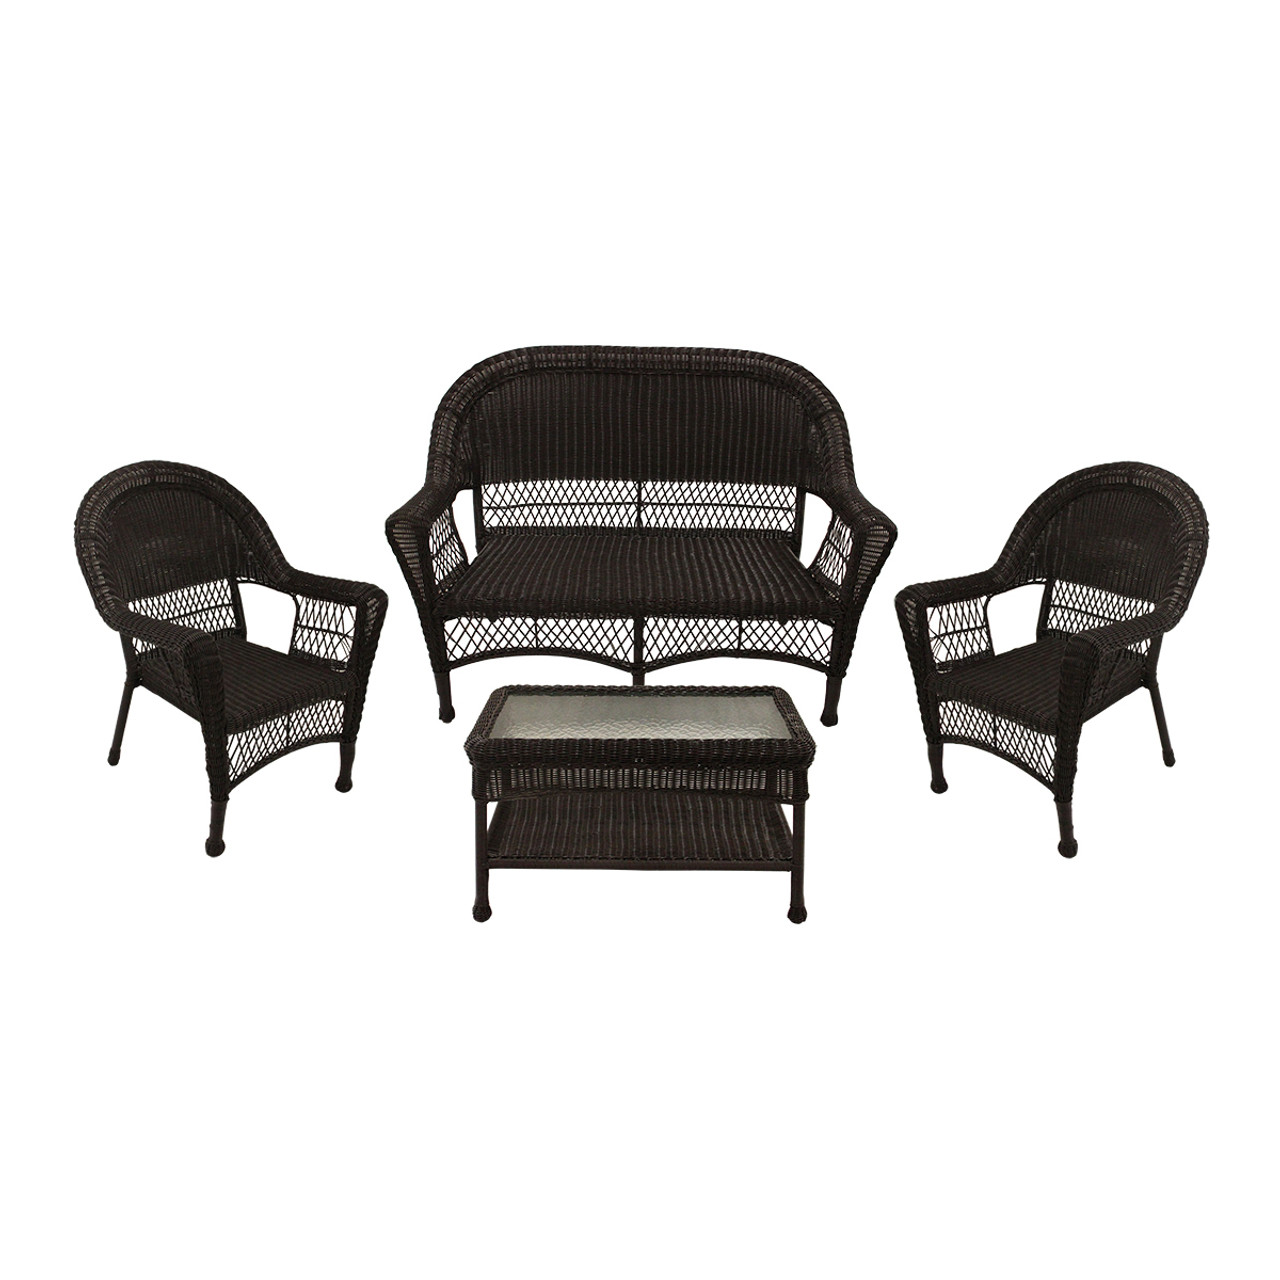 4 piece brown resin wicker patio furniture set with tempered glass 53